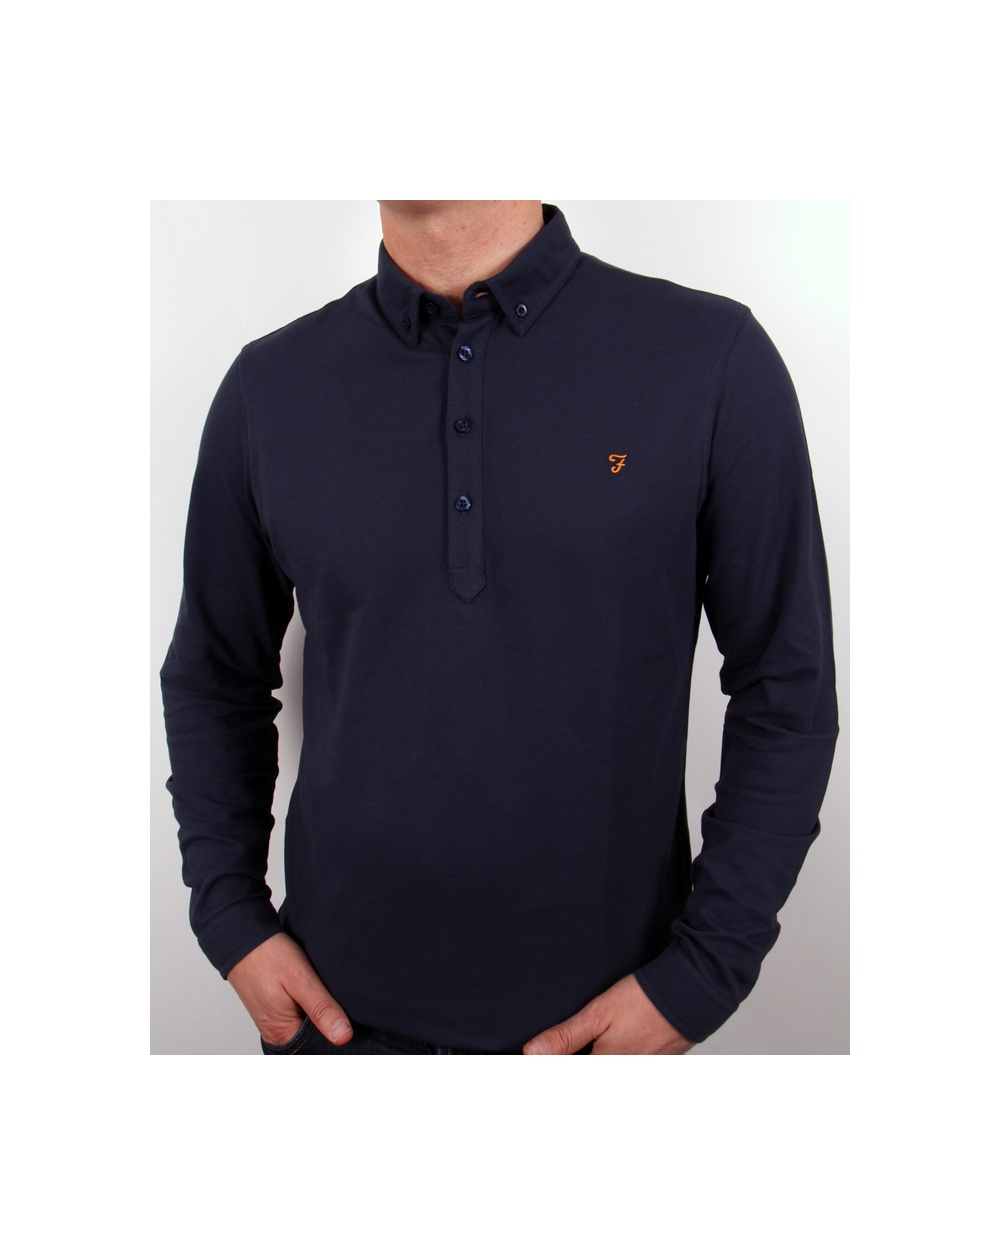 Farah Farah Merriweather Polo Shirt Navy Blue 334c1592d17e